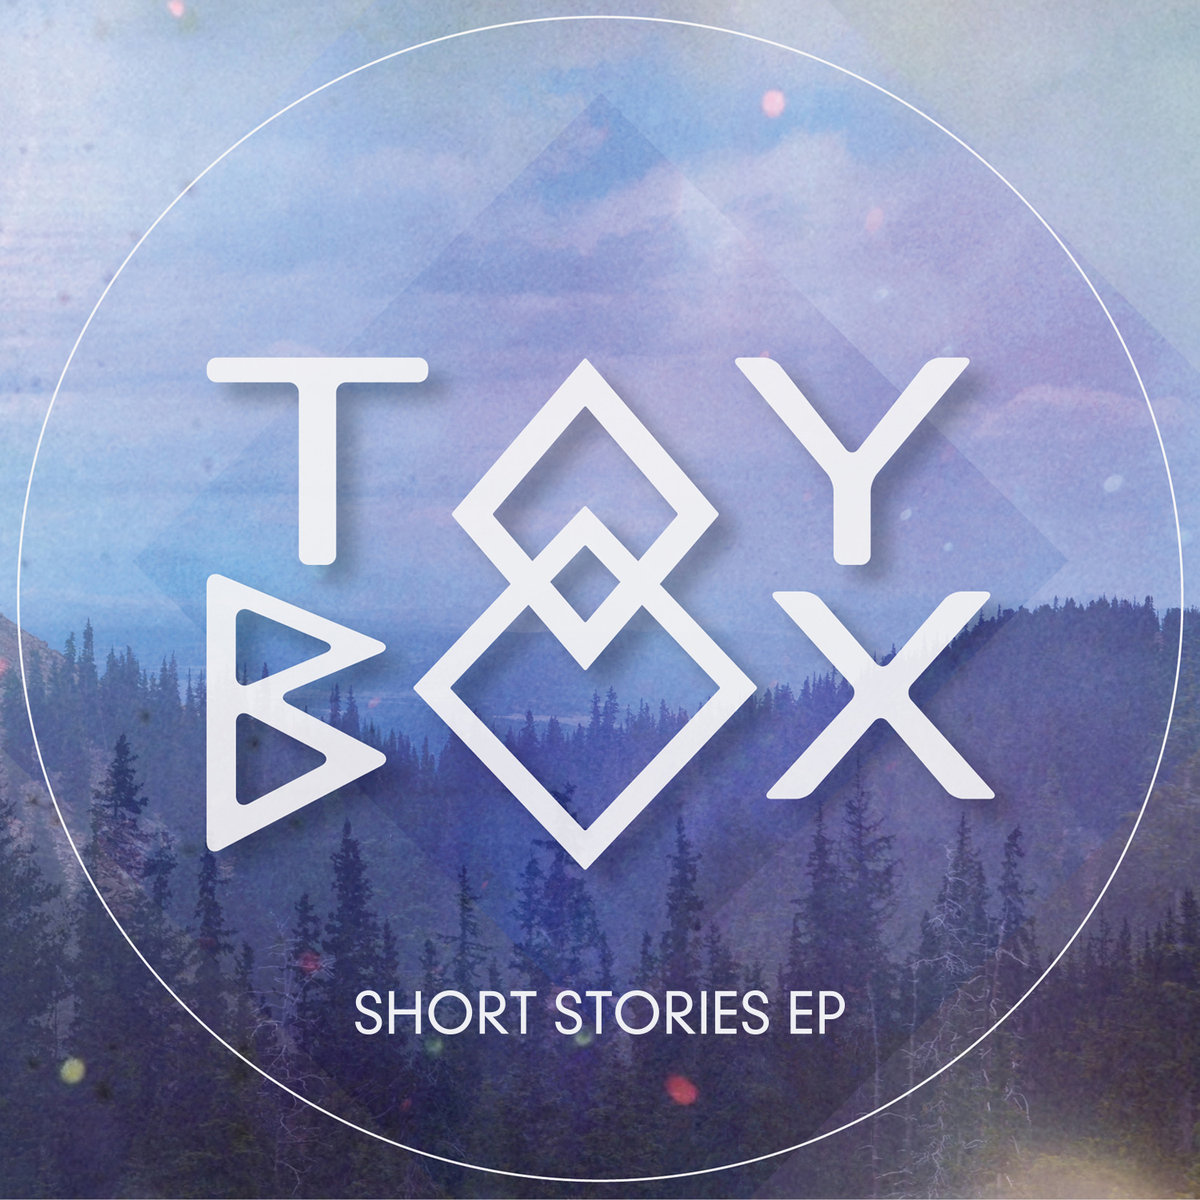 Toy Box - You and I @ 'Short Stories' album (alternative, bass)